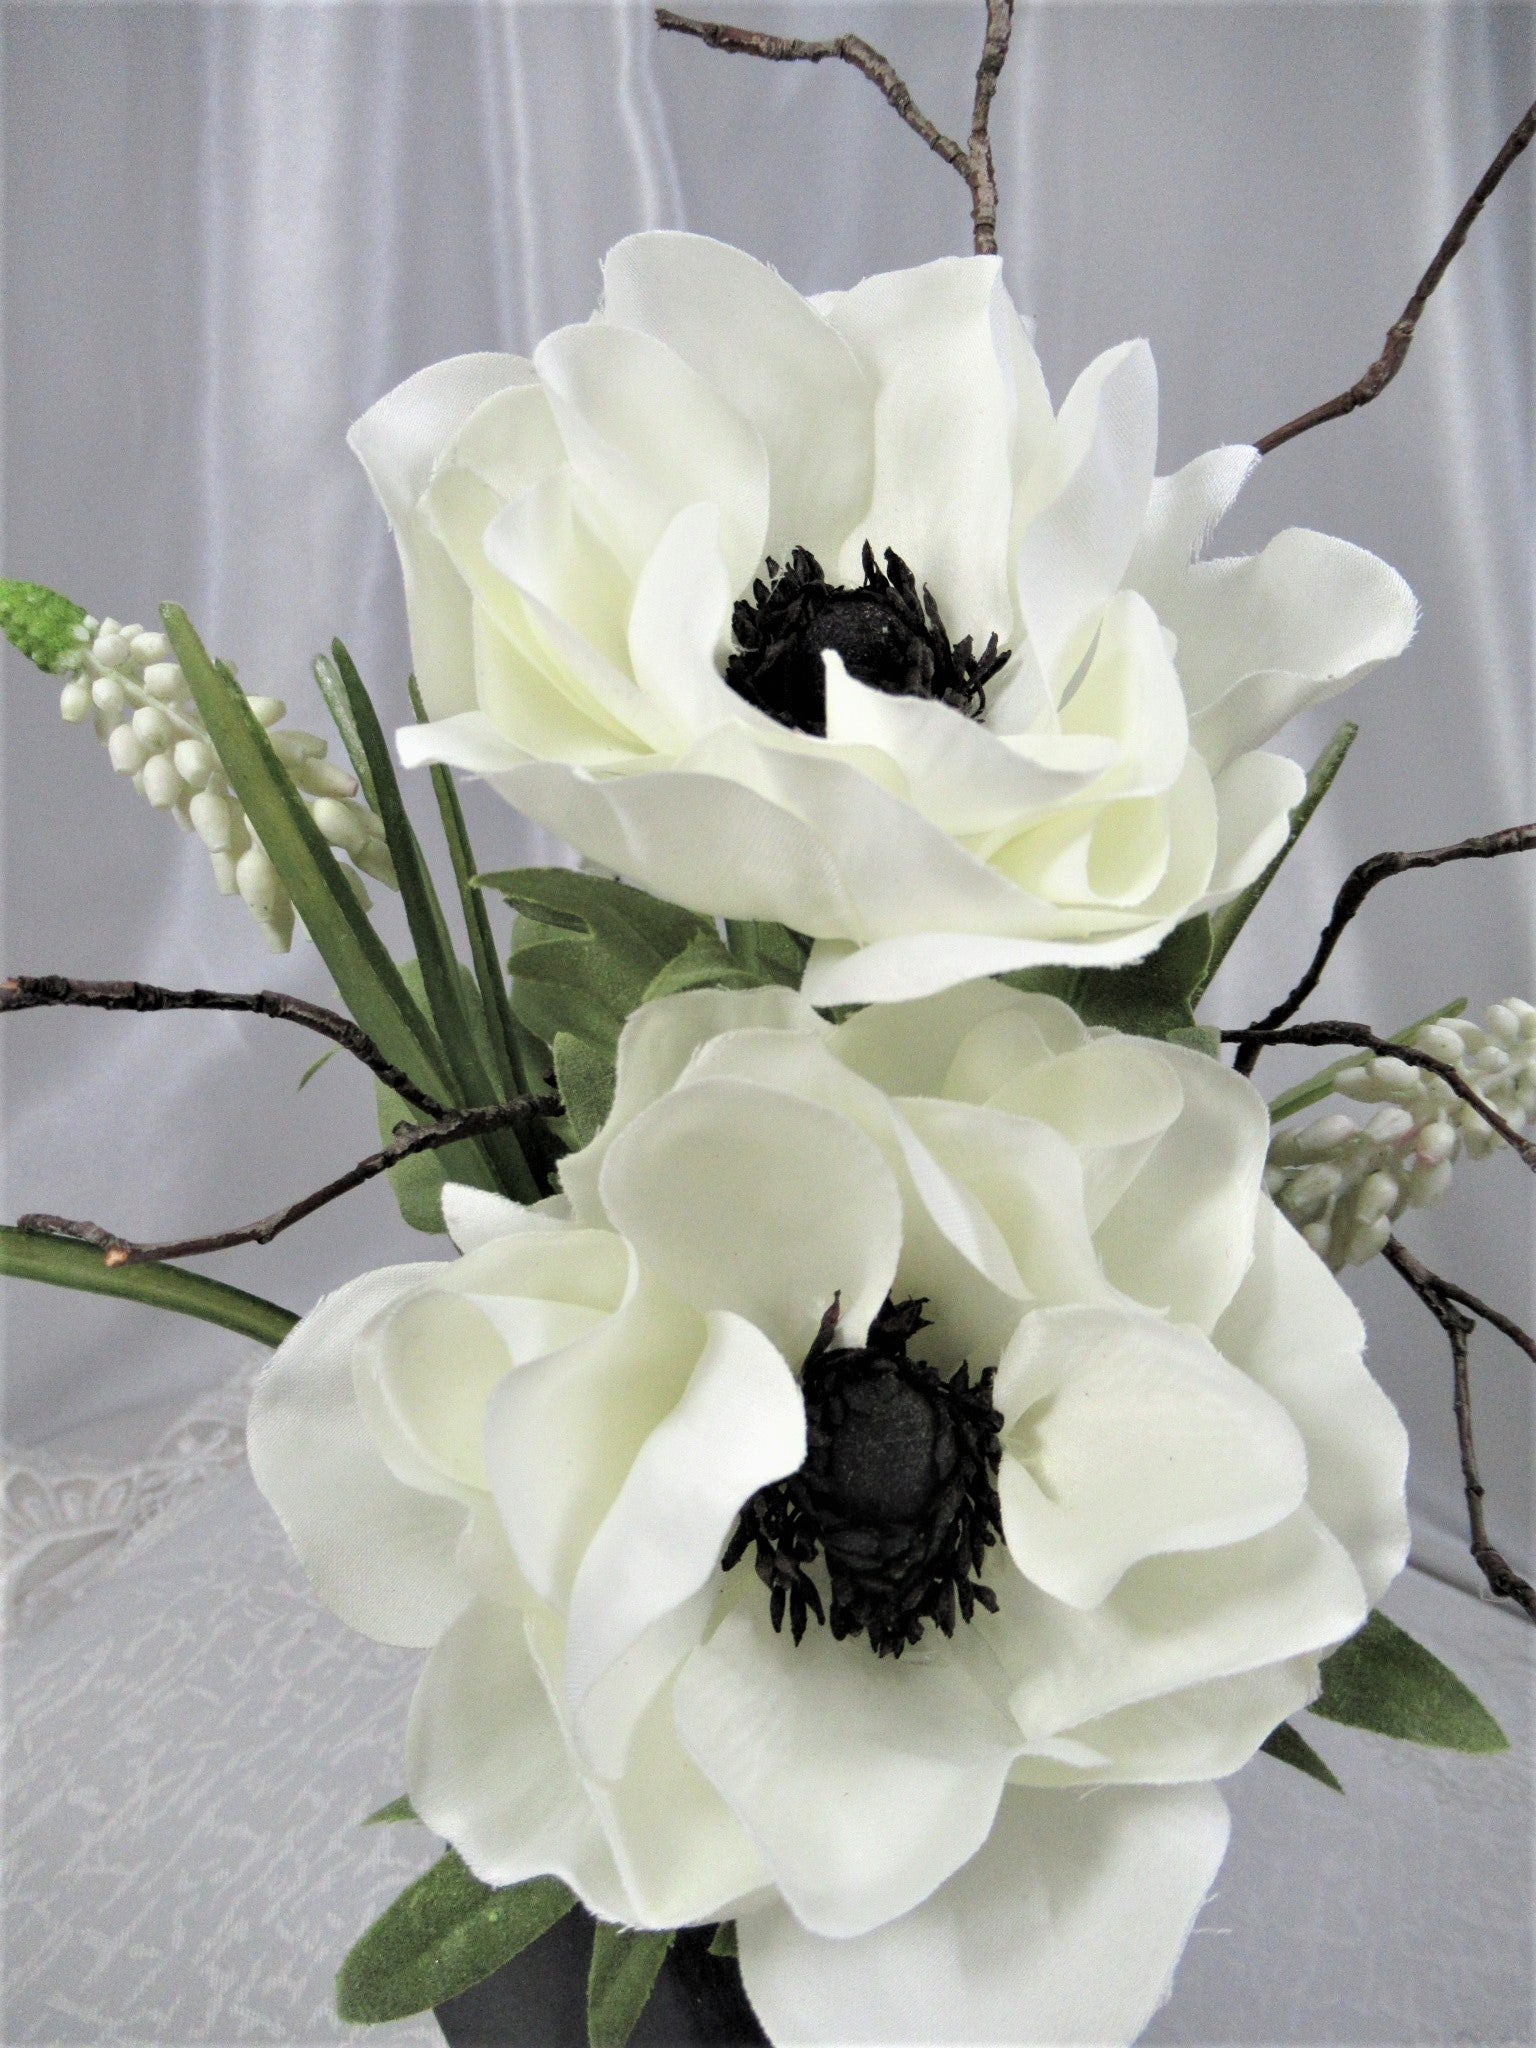 Black and White Poppies with Hyacinth and Natural Branches Small Petite Pot Faux Floral Arrangement - Odyssey Creations